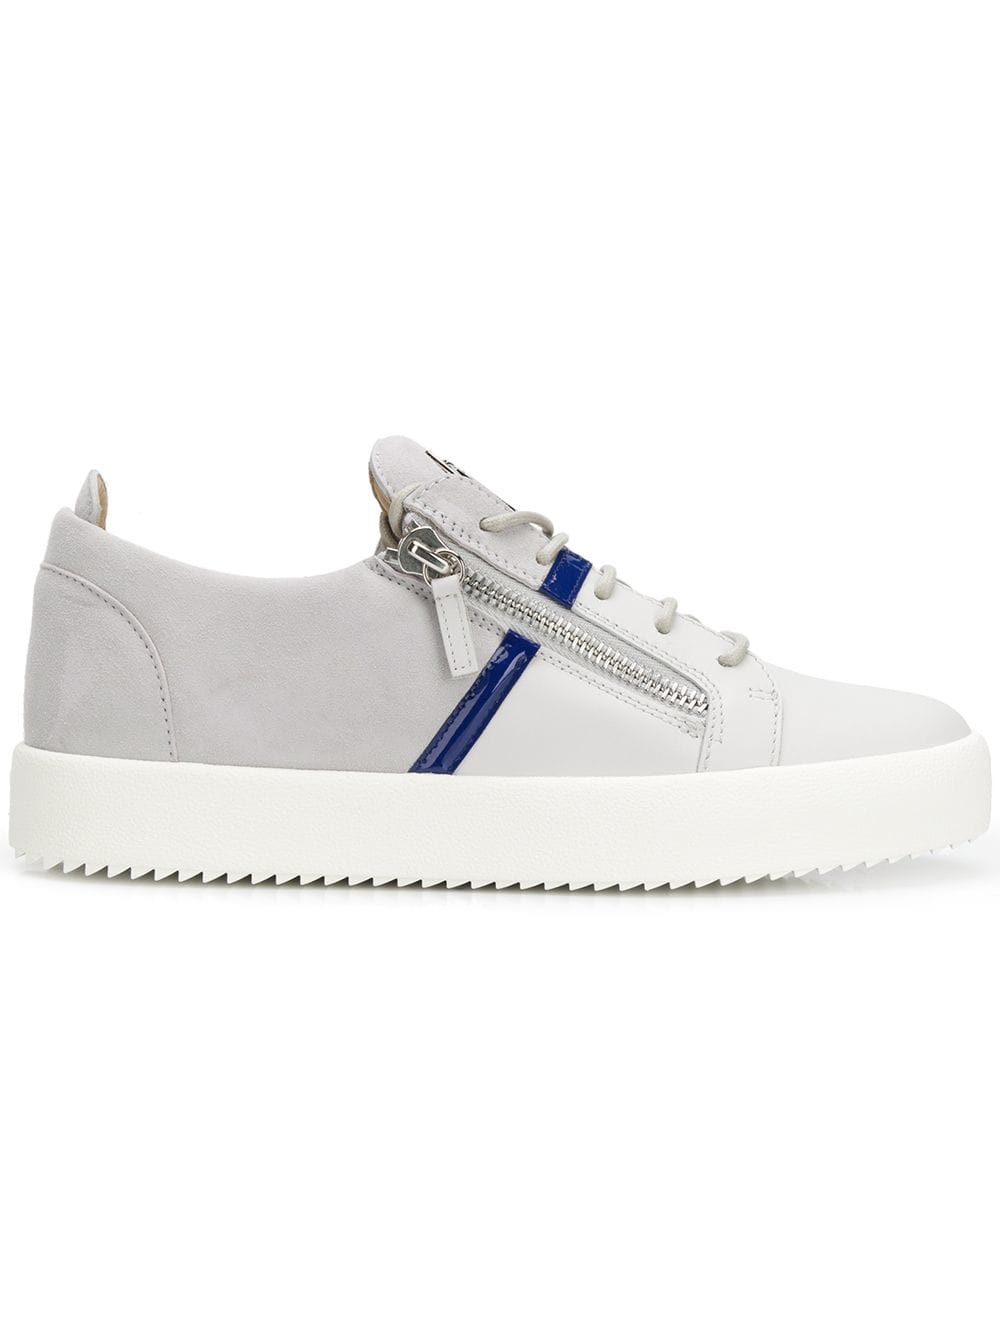 b6c4a188d3cb Giuseppe Zanotti Two-Tone Leather And Suede Trainers In Grey